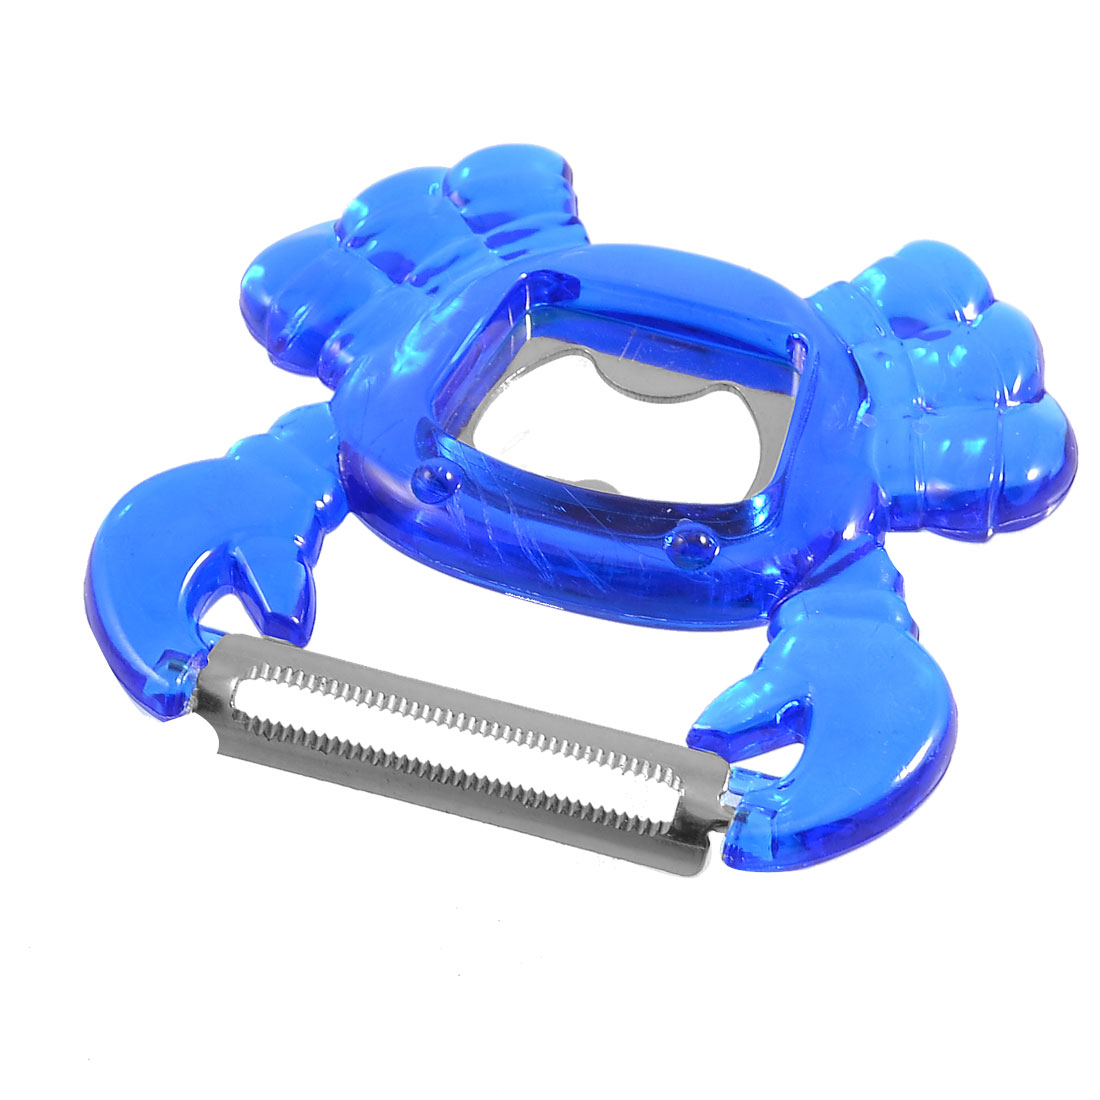 Kitchen Royal Blue Crab Shaped Fruit Potato Peeler Bottle Opener